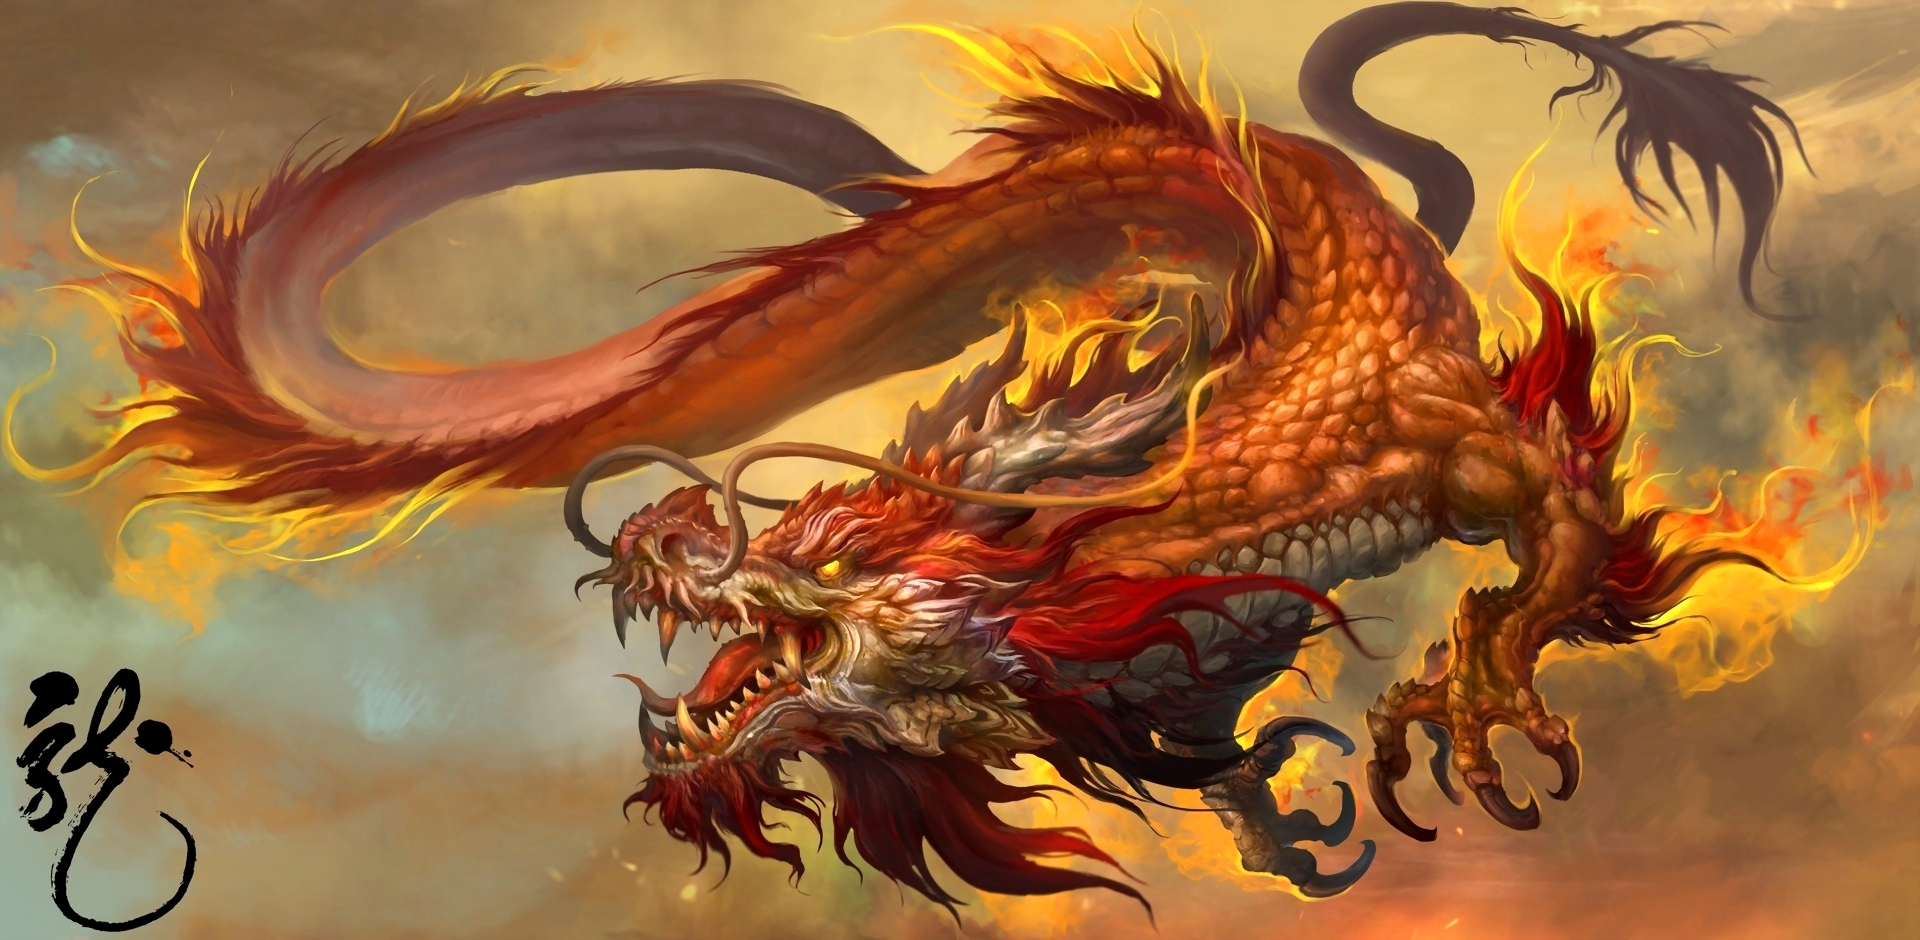 Scary Red Dragon Wallpaper